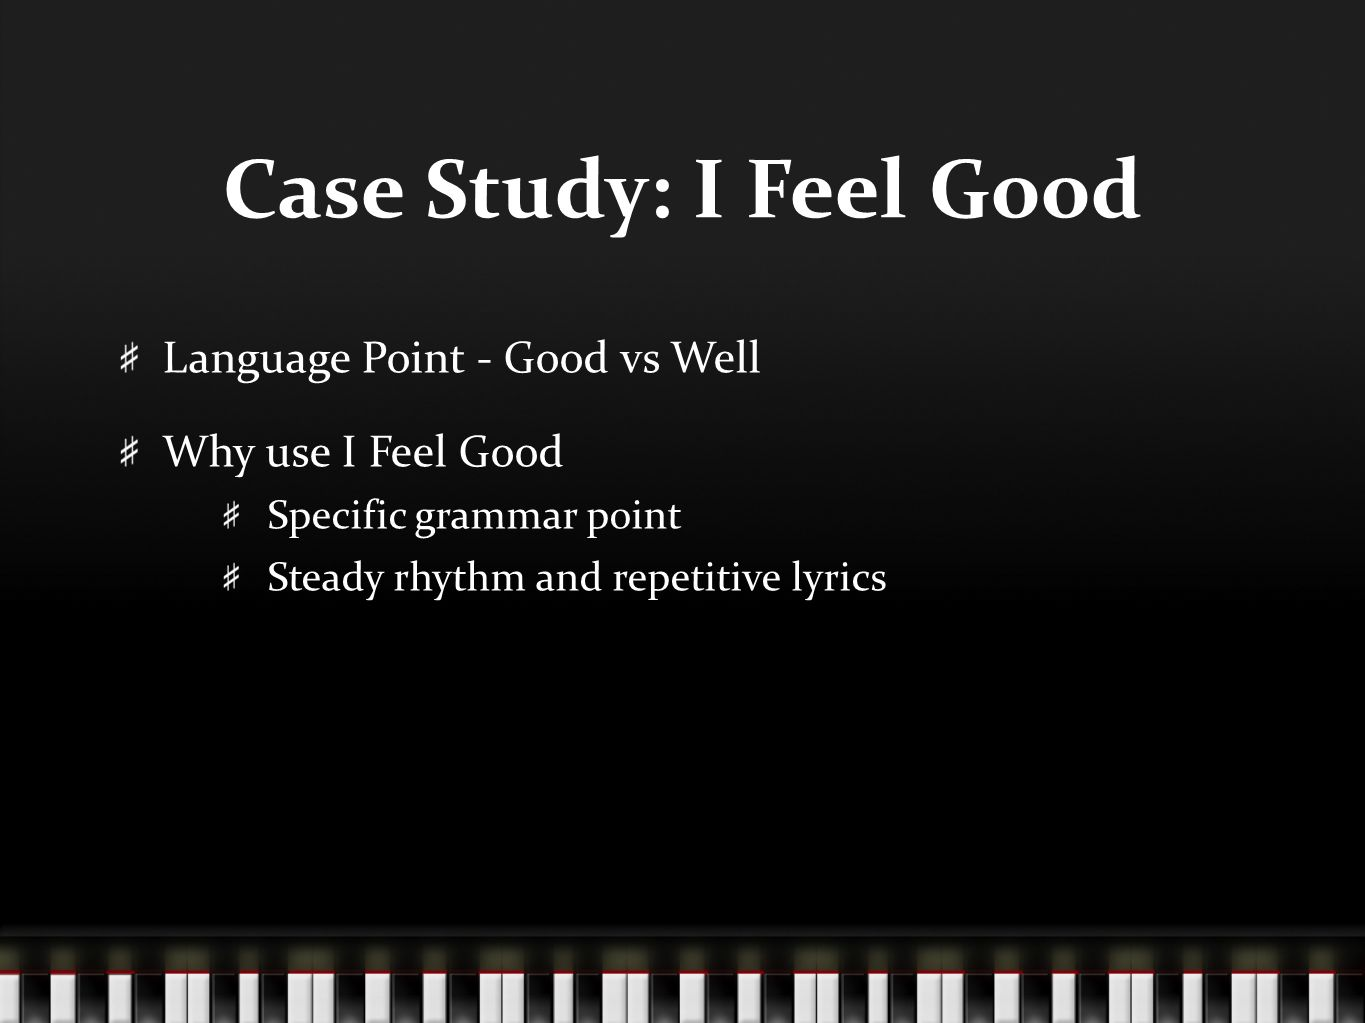 Case Study: I Feel Good Language Point - Good vs Well Why use I Feel Good Specific grammar point Steady rhythm and repetitive lyrics